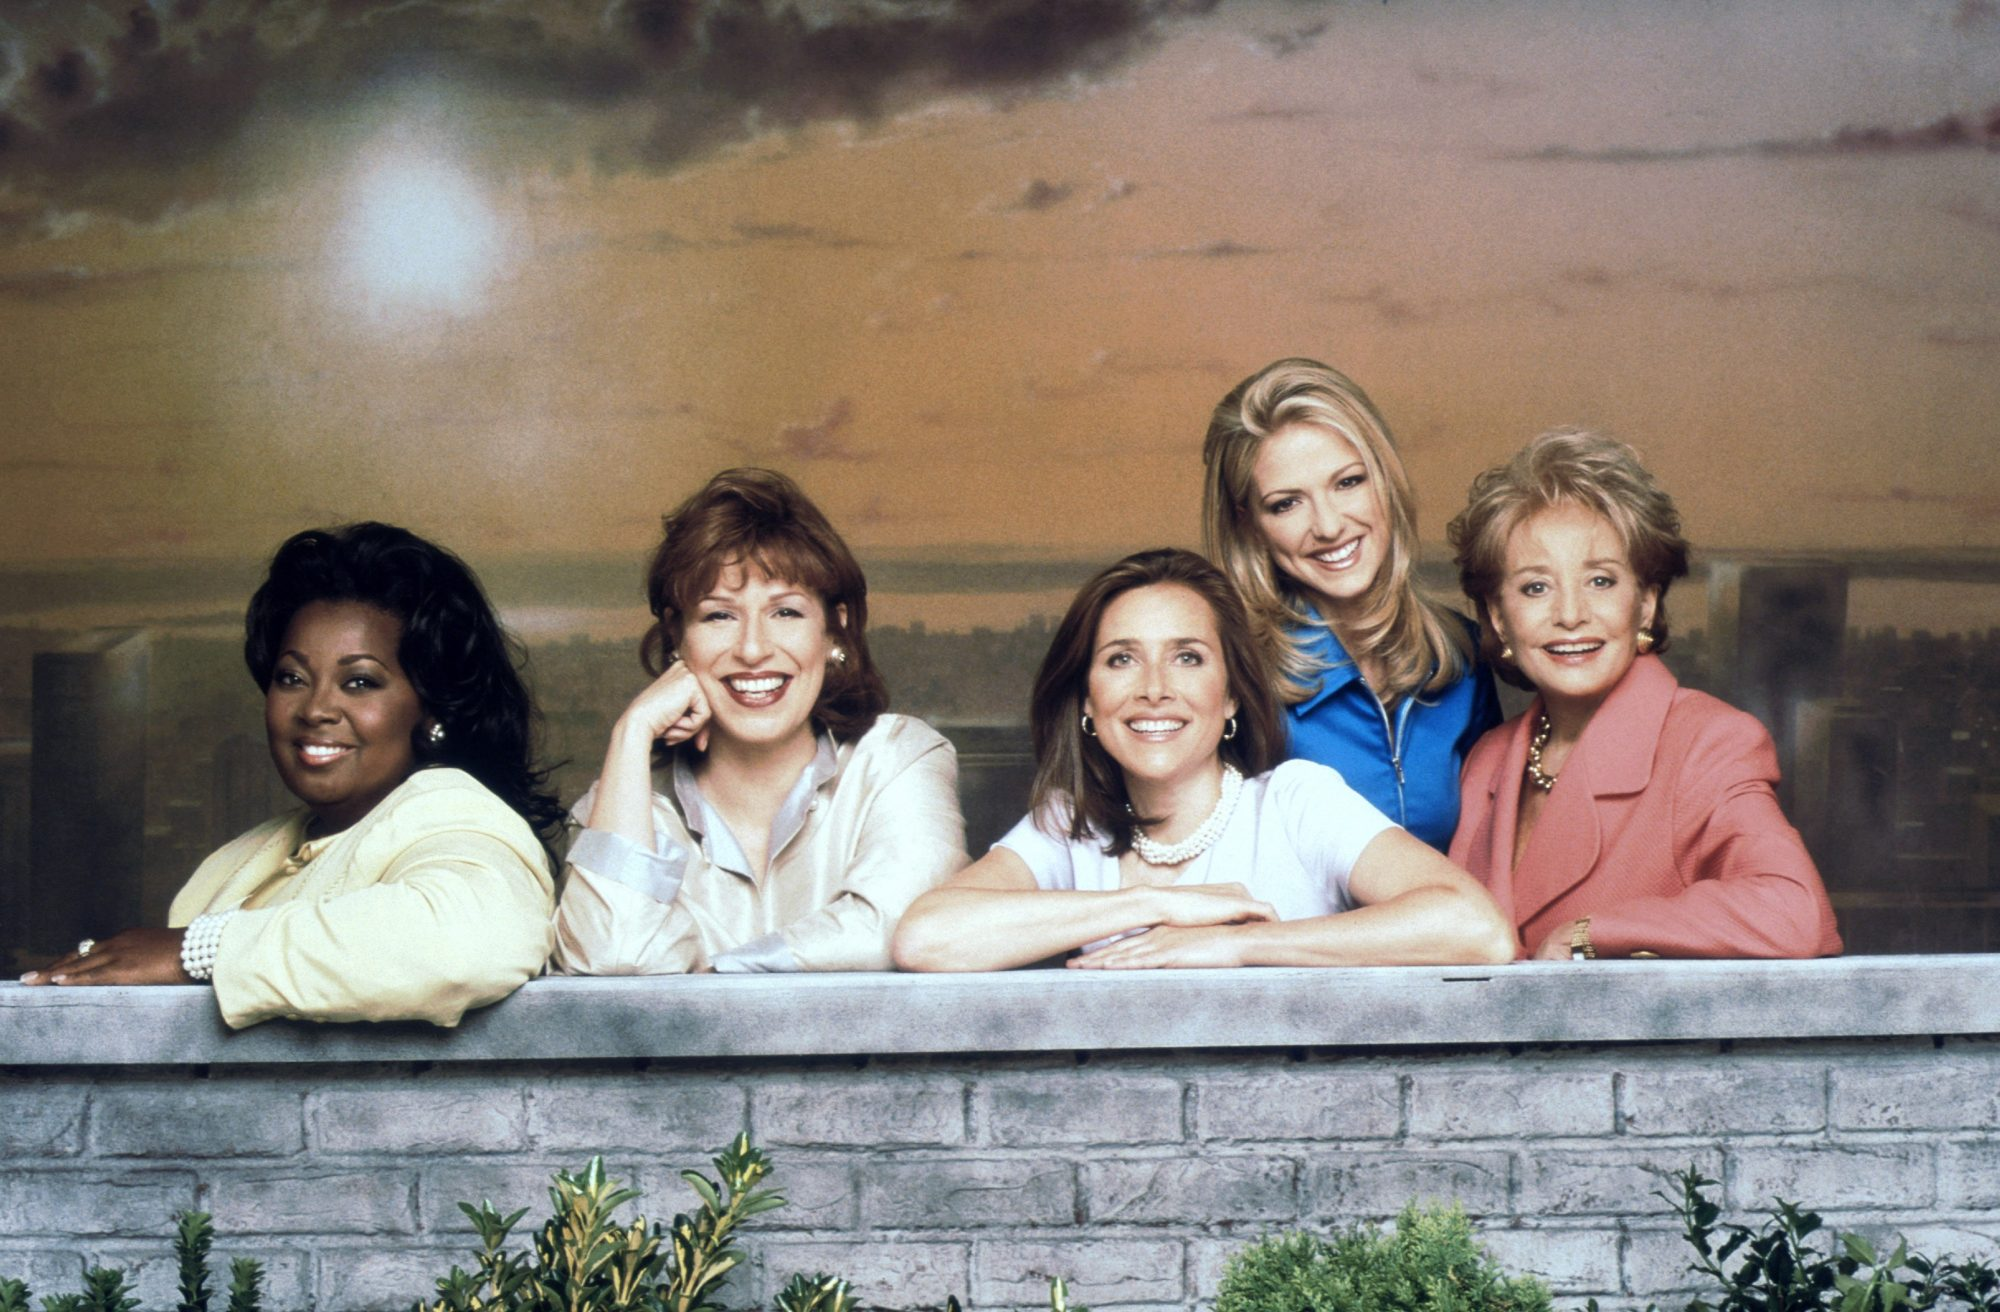 THE VIEW, (from left): Star Jones, Joy Behar, Meredith Vieira, Debbie Matenopoulos, Barbara Walters,